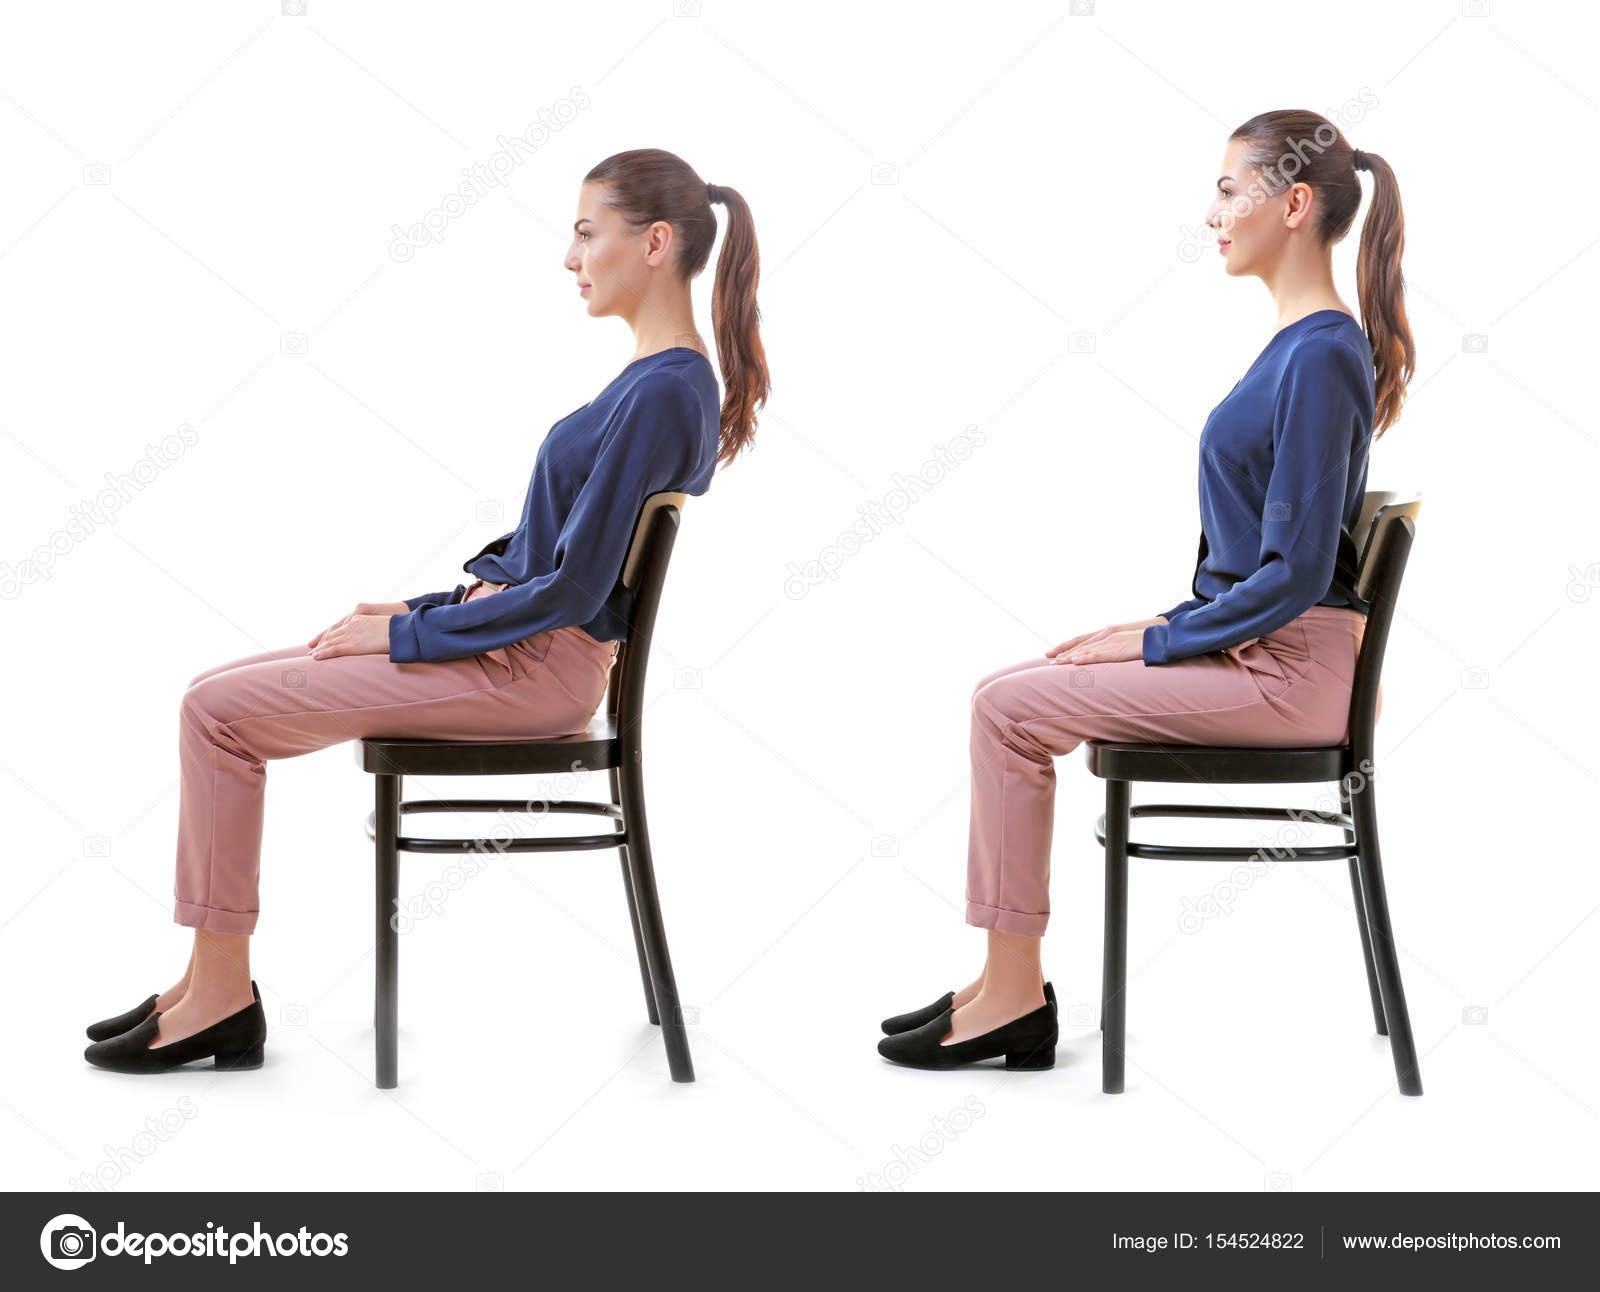 bad posture in chair office high rehabilitation concept collage of woman with poor and